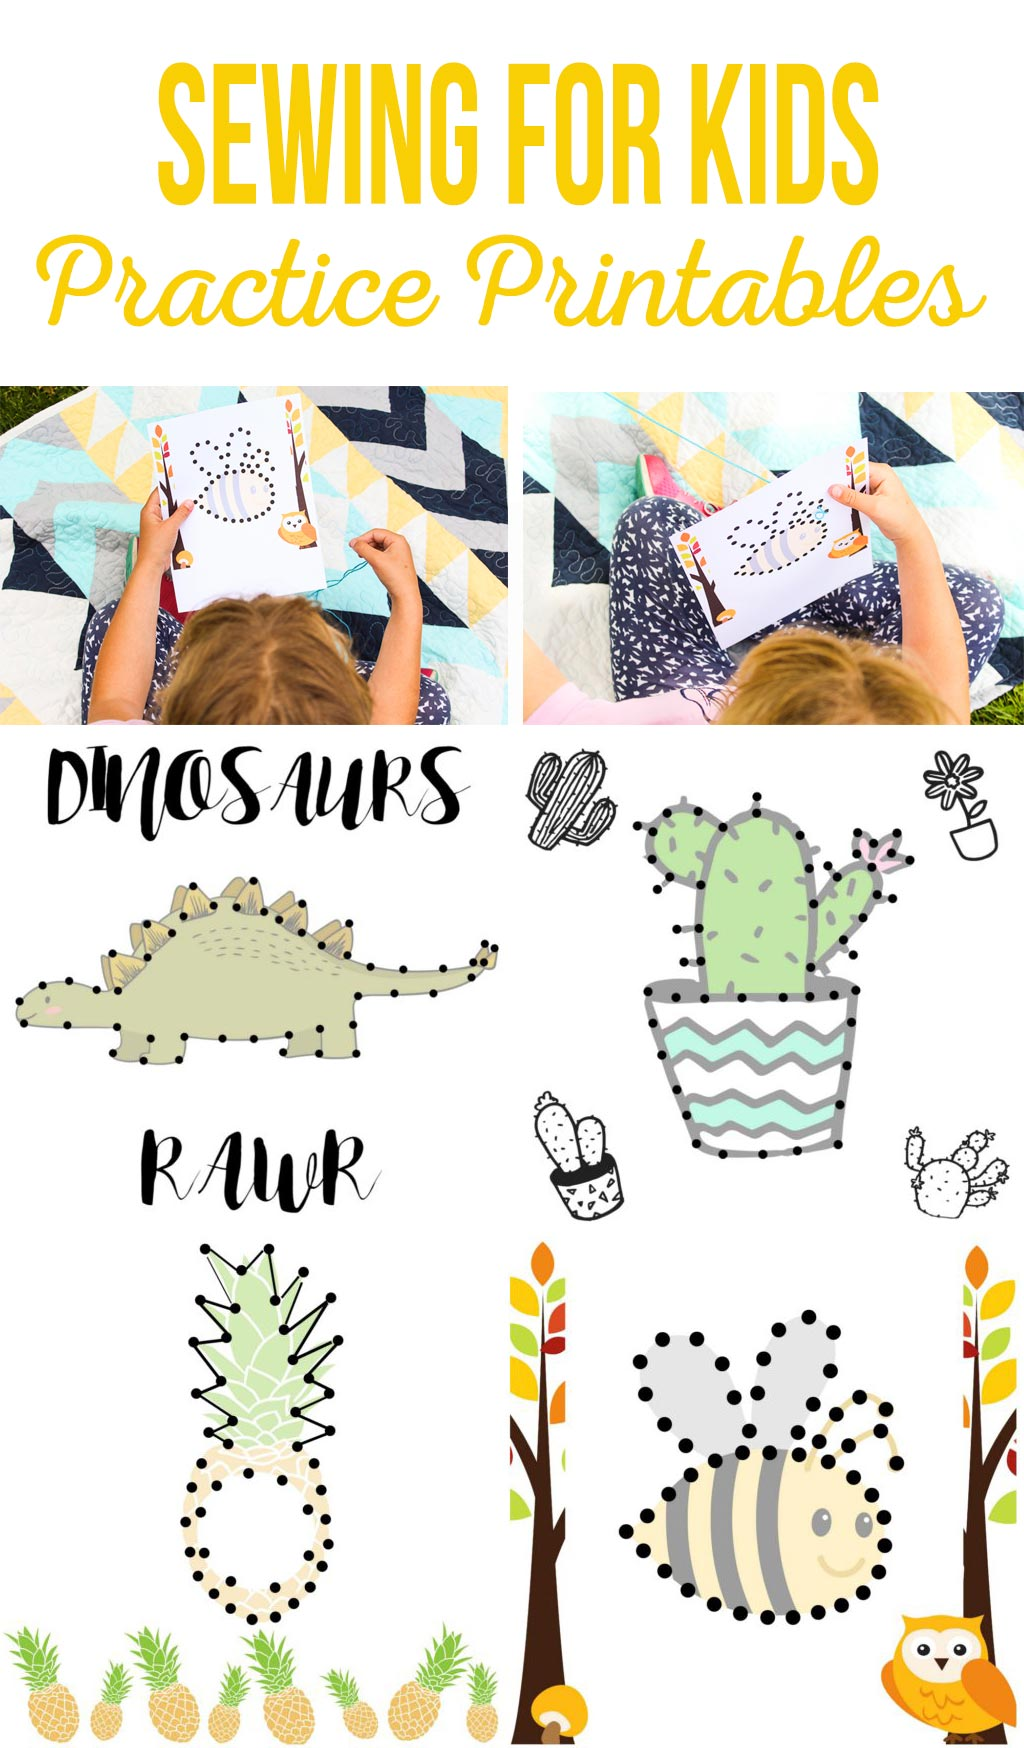 http://thecraftingchicks.com/wp-content/uploads/2017/07/Sewing-for-Kids-Practice-Printables.jpg